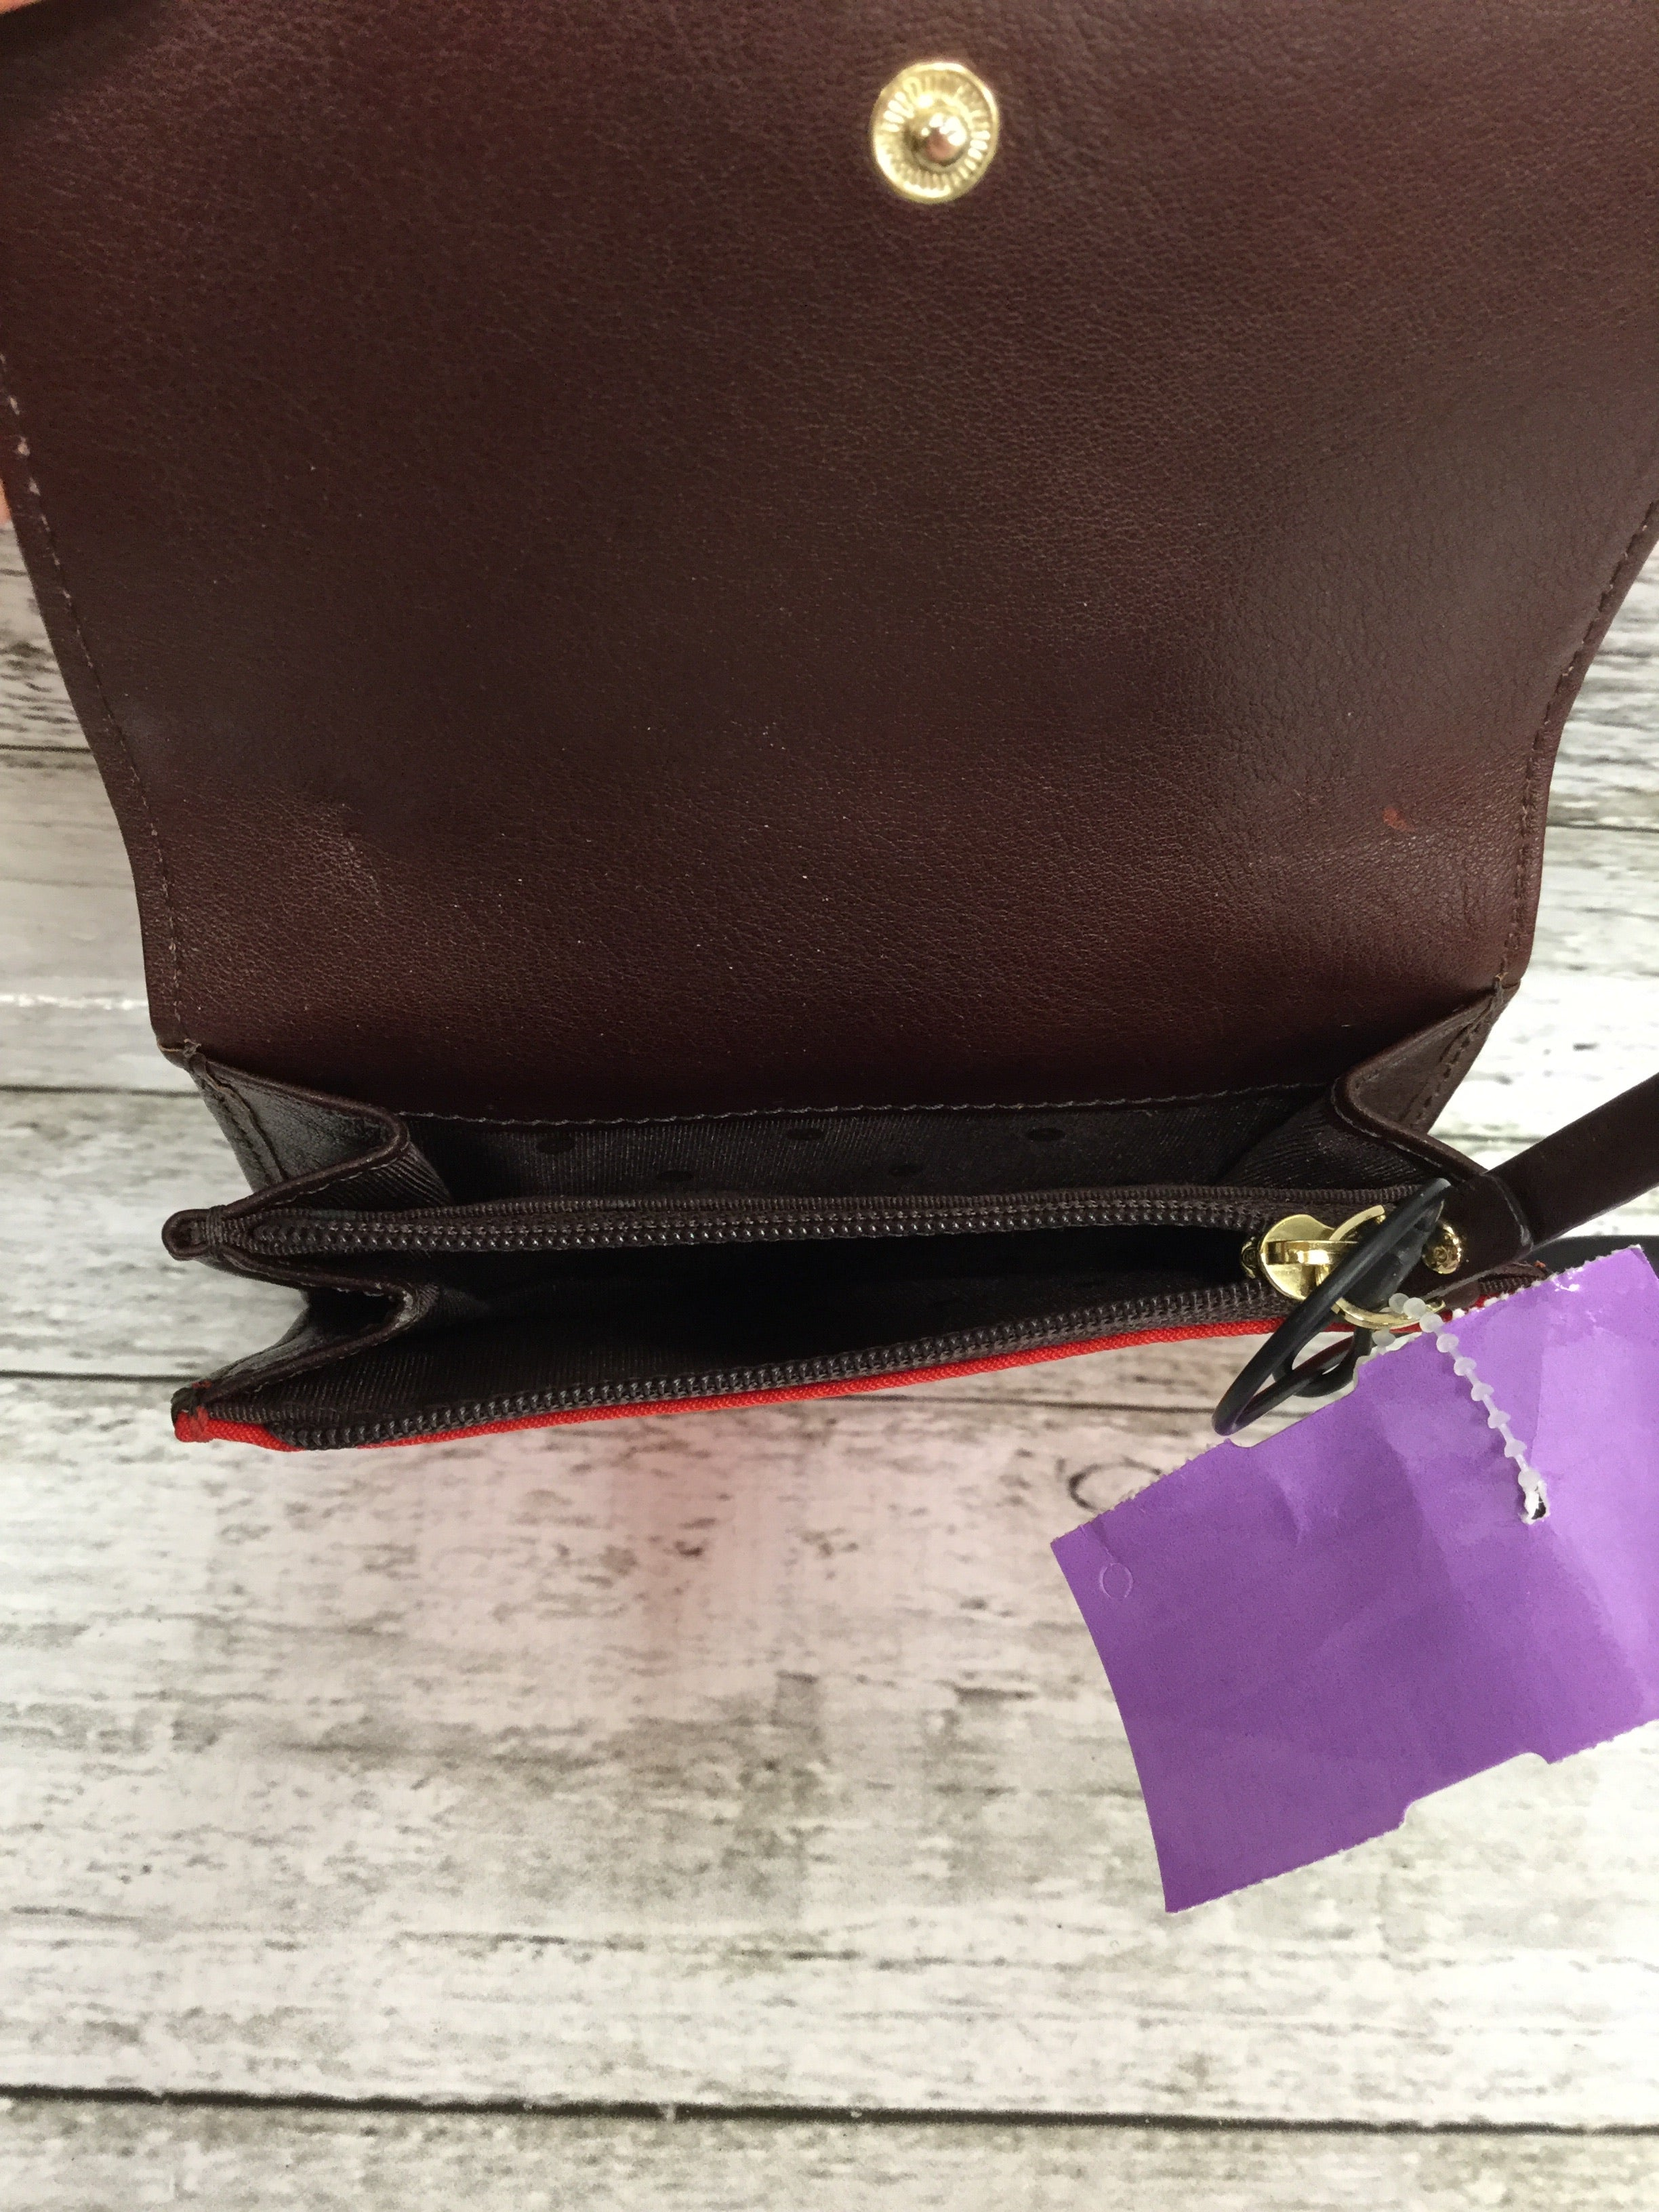 Photo #3 - BRAND: KATE SPADE , STYLE: WALLET , COLOR: RED , SIZE: SMALL , SKU: 127-3371-48386, , IN GREAT CONDITION. MINOR WEAR ON THE INSIDE LEATHER (AS PICTURED).